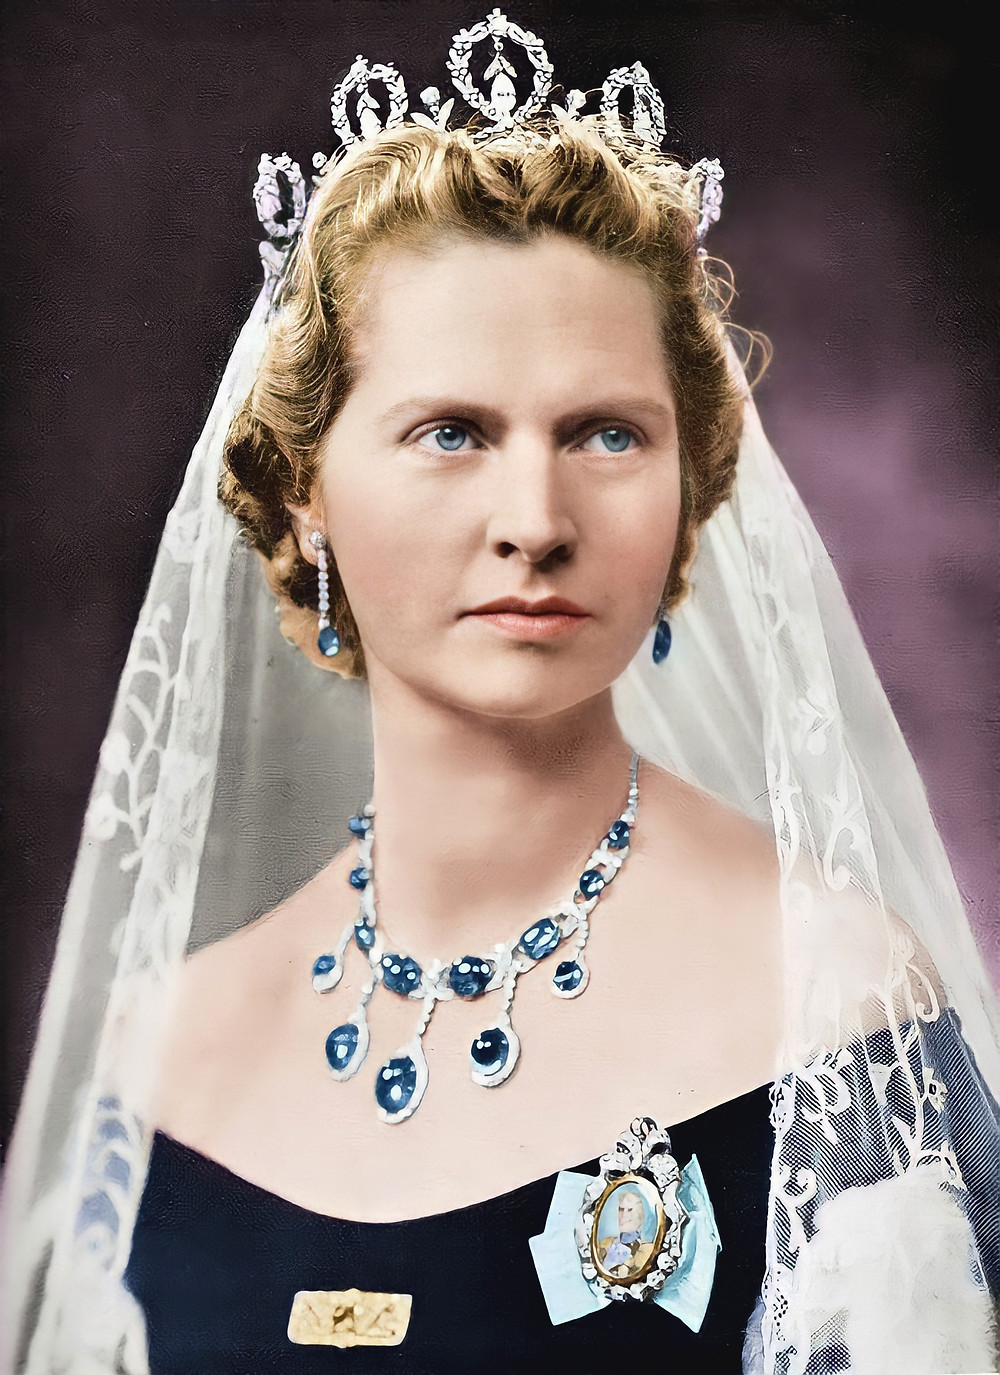 Princess Sibylla of Saxe-Coburg & Gotha